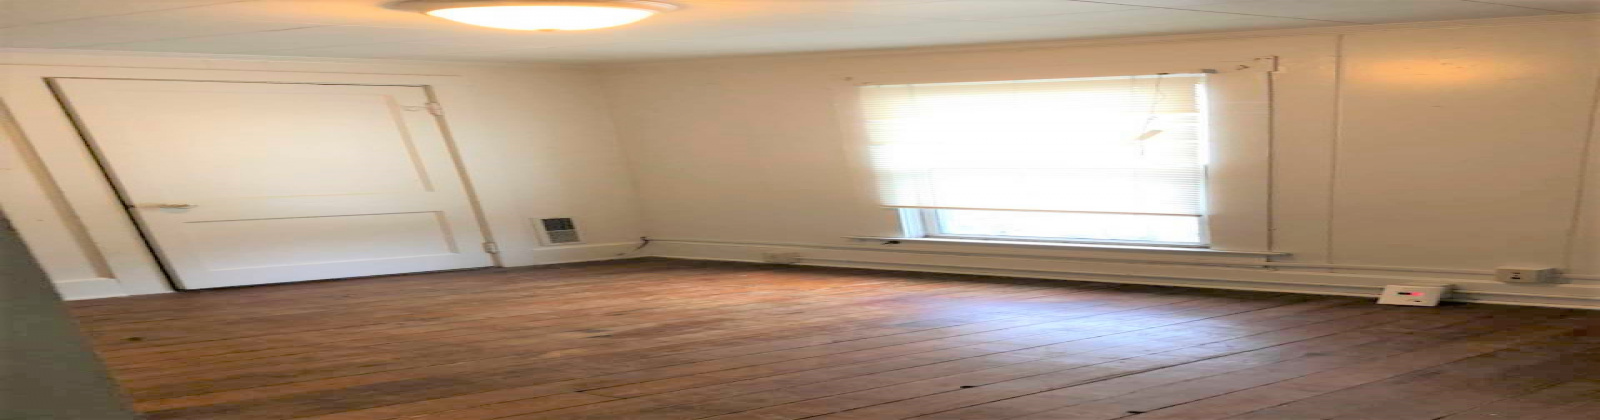 177 N Lancaster Street Athens, Ohio, 3 Bedrooms Bedrooms, ,1 BathroomBathrooms,Apartment,For Rent,N Lancaster,1096